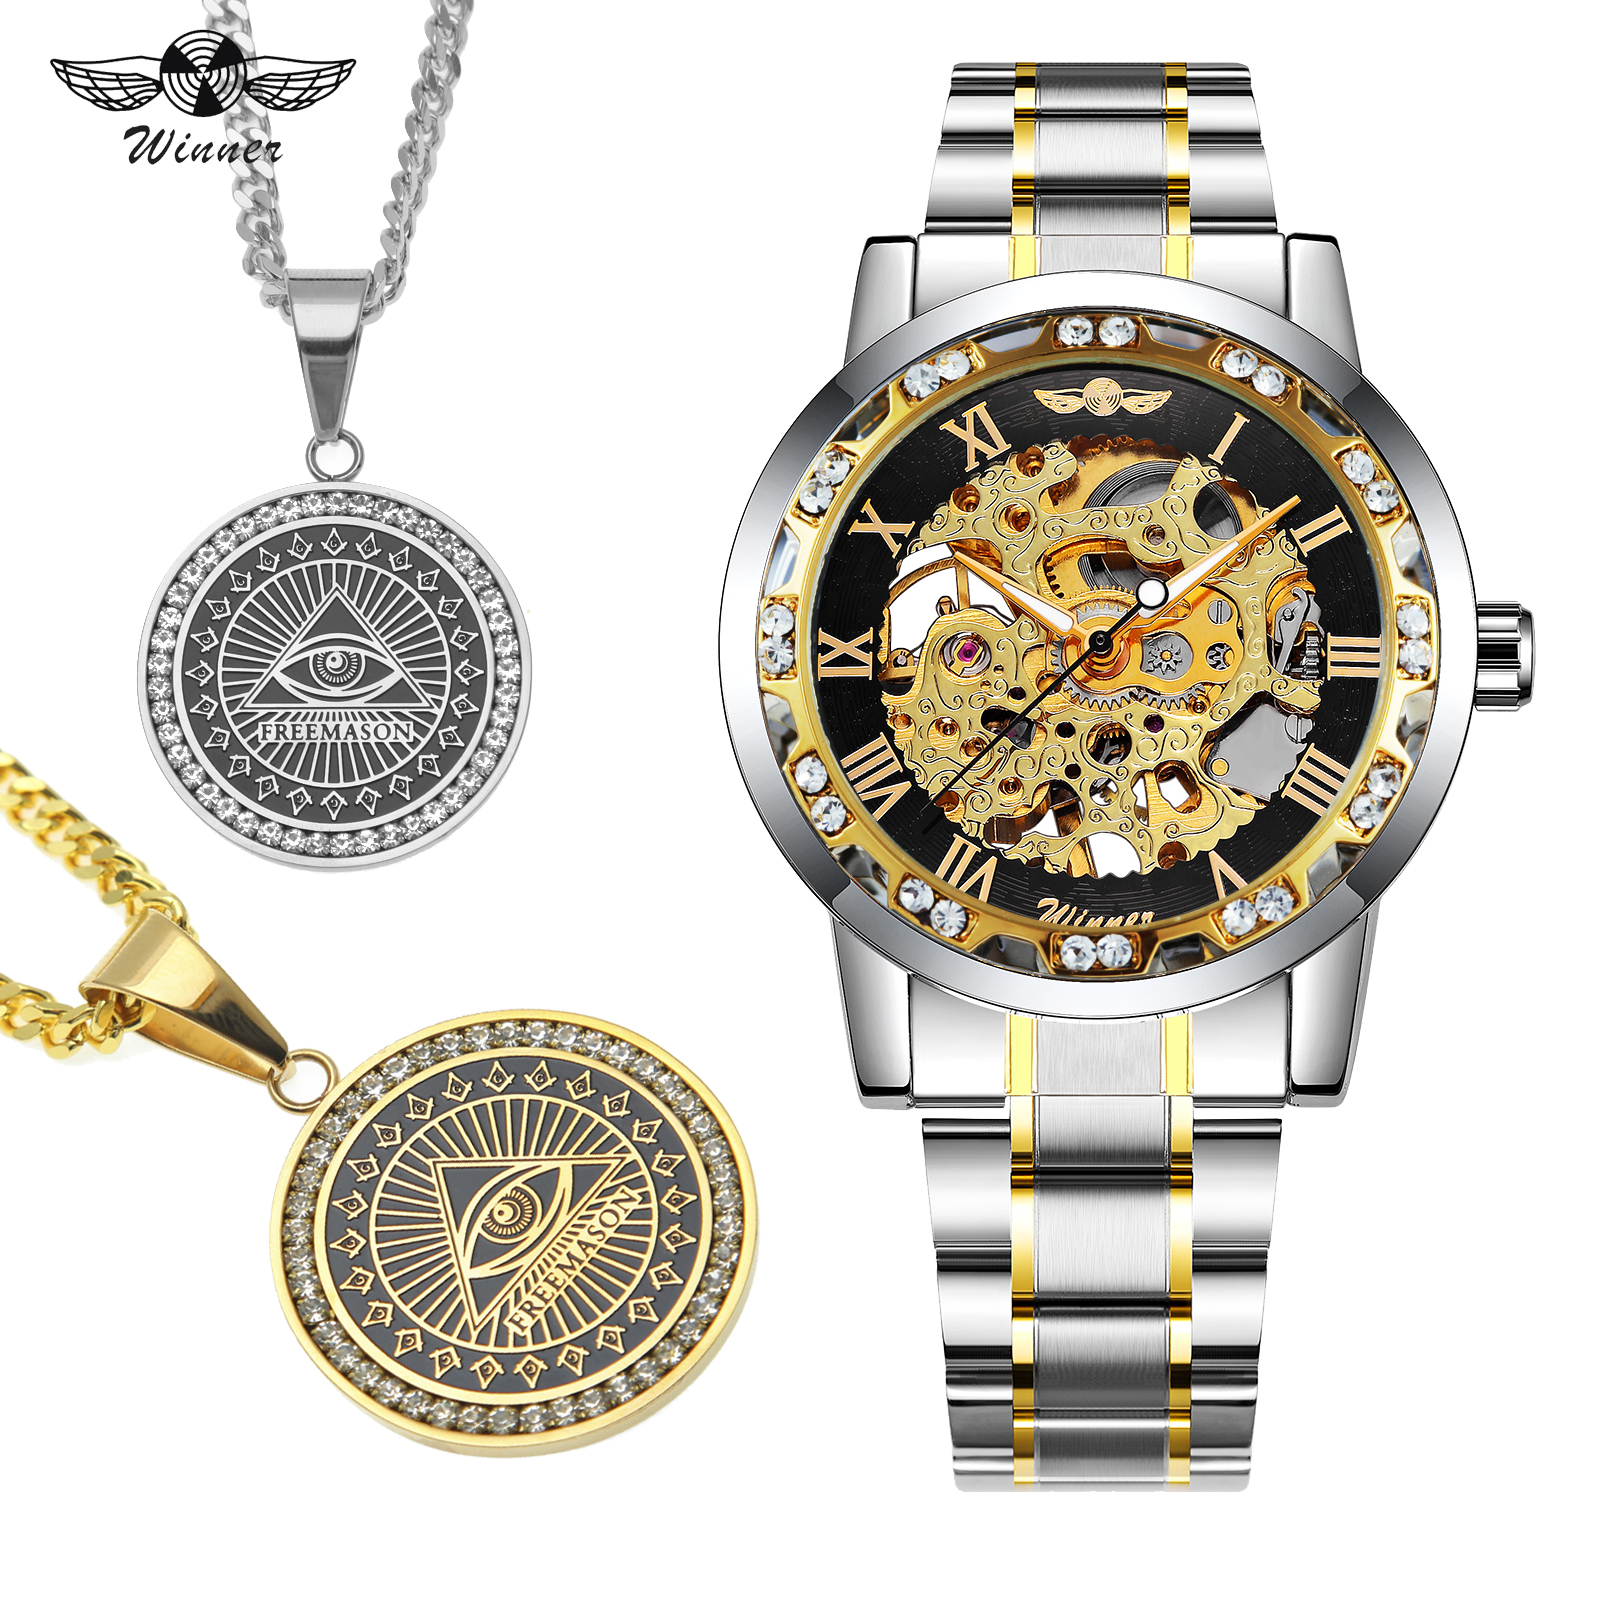 WINNER Fashion Mechanical Watch Men Top Brand Luxury Steel Strap Hip Hop Punk Jewelry Set + EYE Creative NecklaceWINNER Fashion Mechanical Watch Men Top Brand Luxury Steel Strap Hip Hop Punk Jewelry Set + EYE Creative Necklace